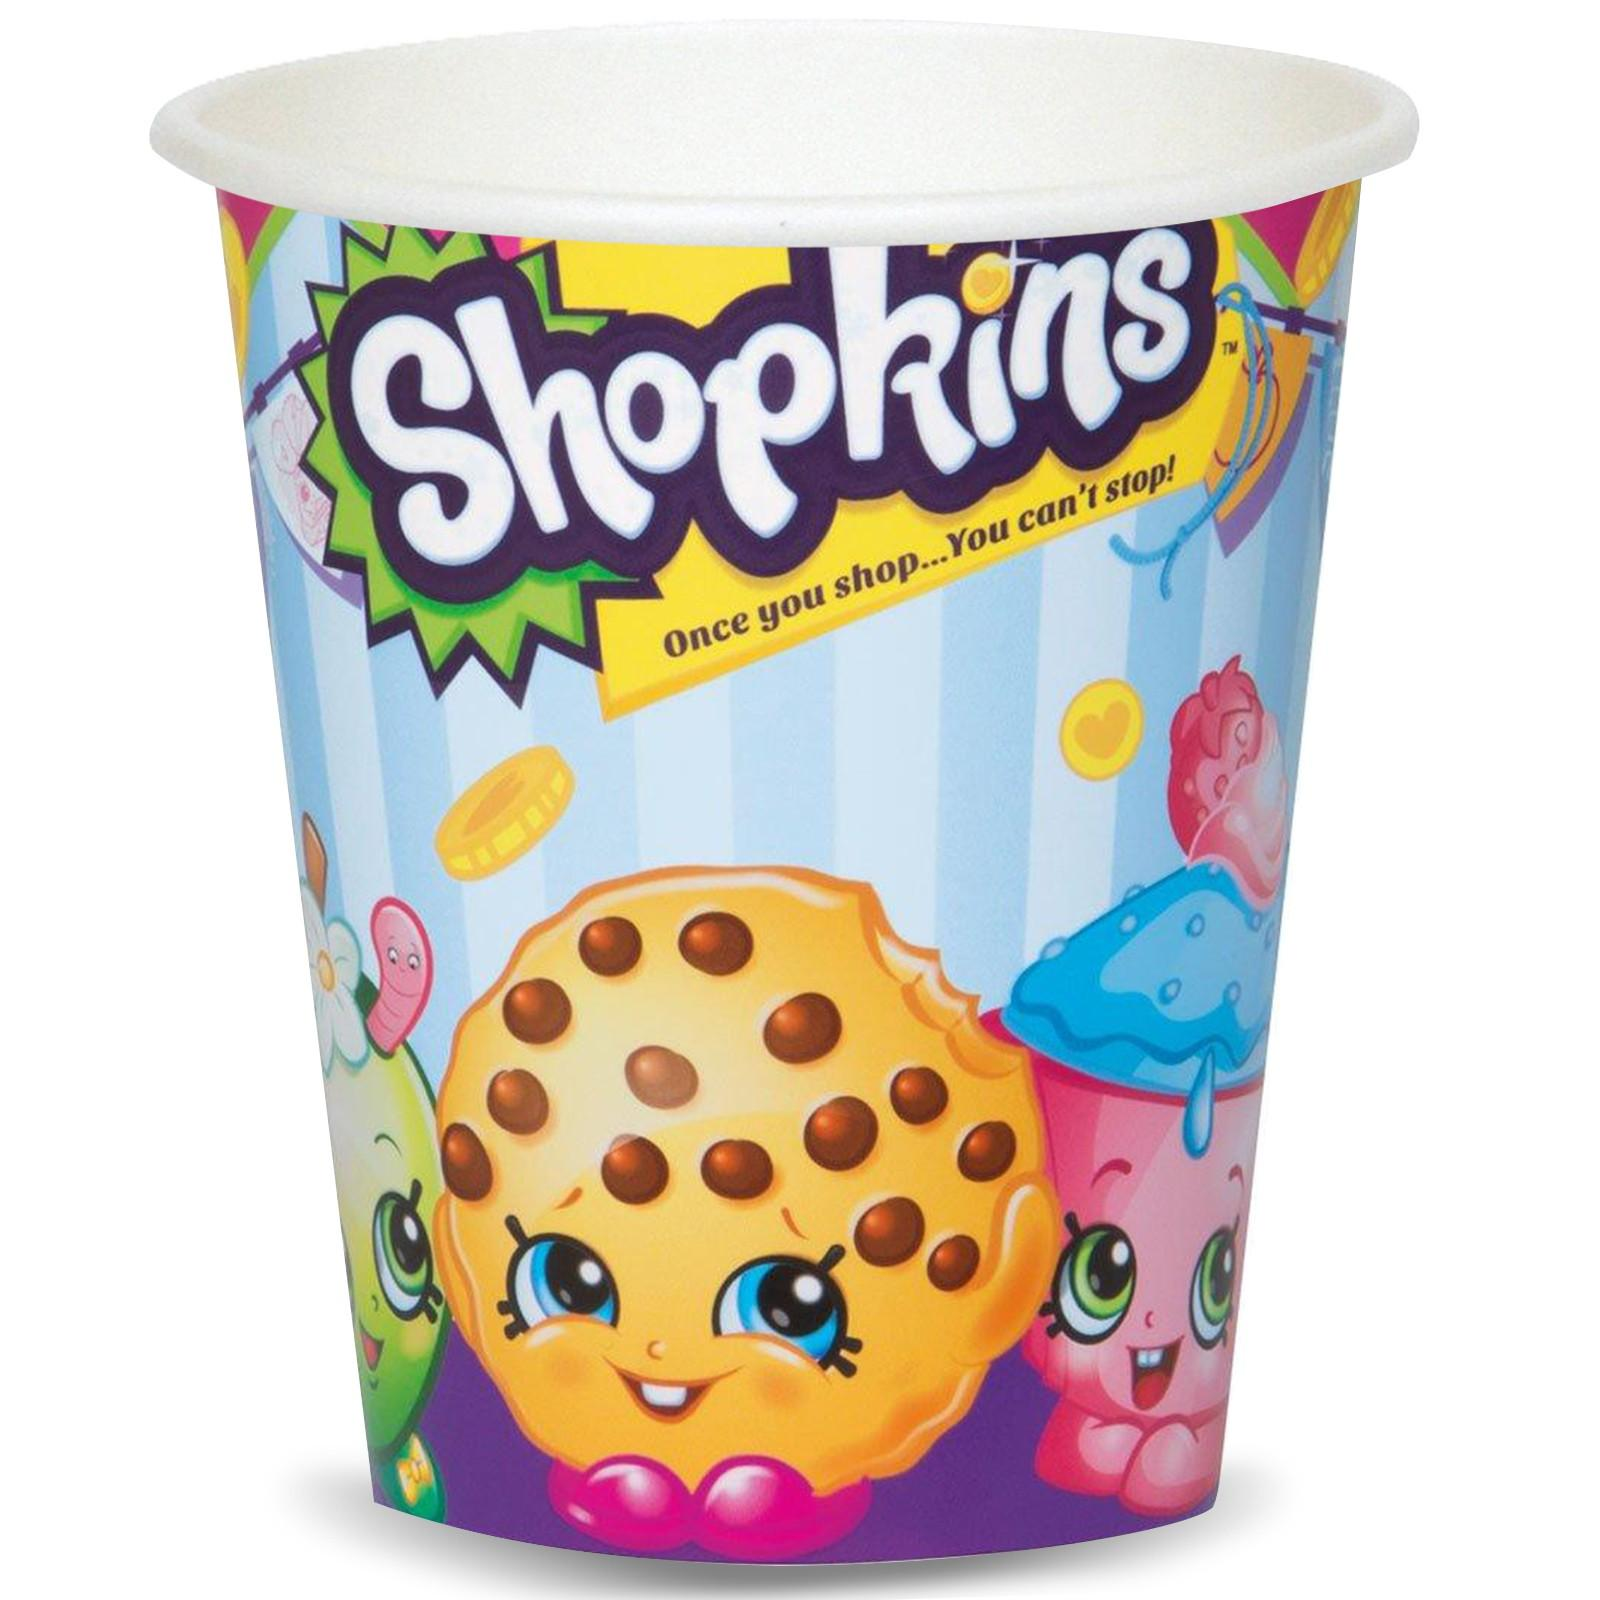 9oz Paper Shopkins Cups, 8ct